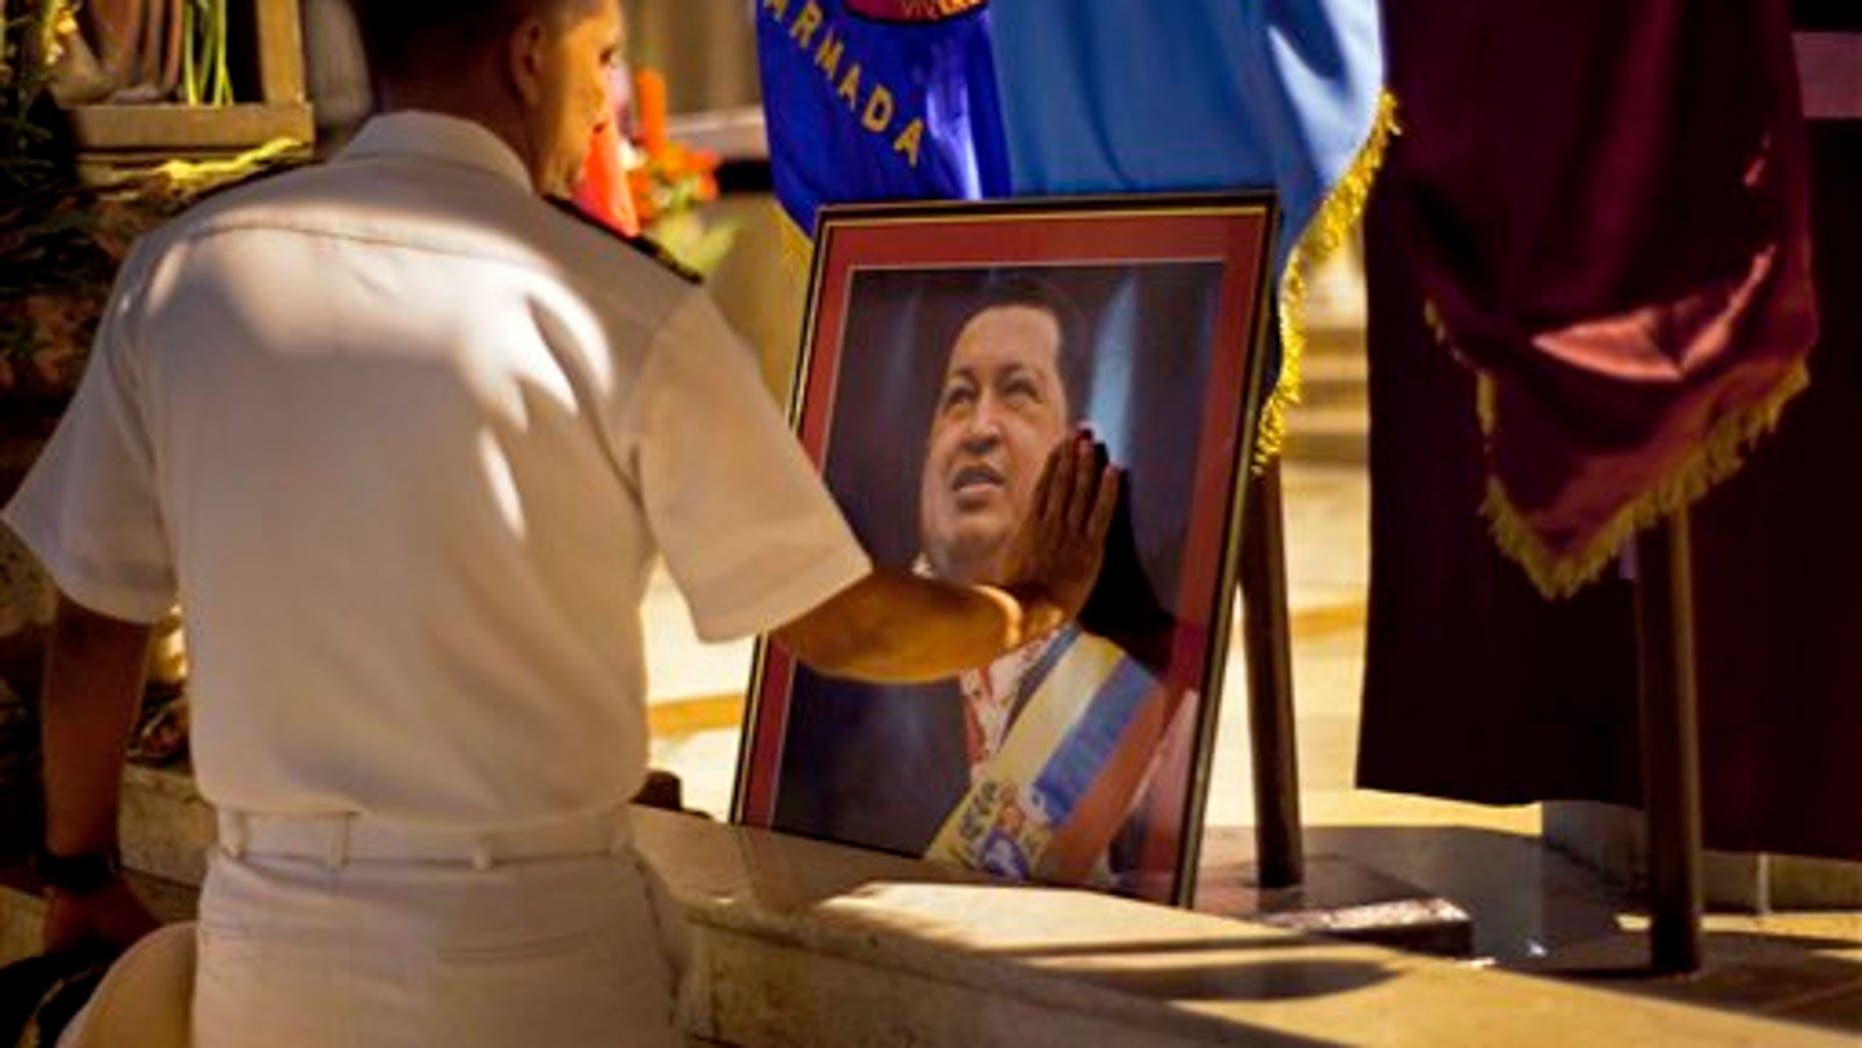 A member of Venezuela's navy touches an image of President Hugo Chavez after a mass in support of him in Havana, Cuba.